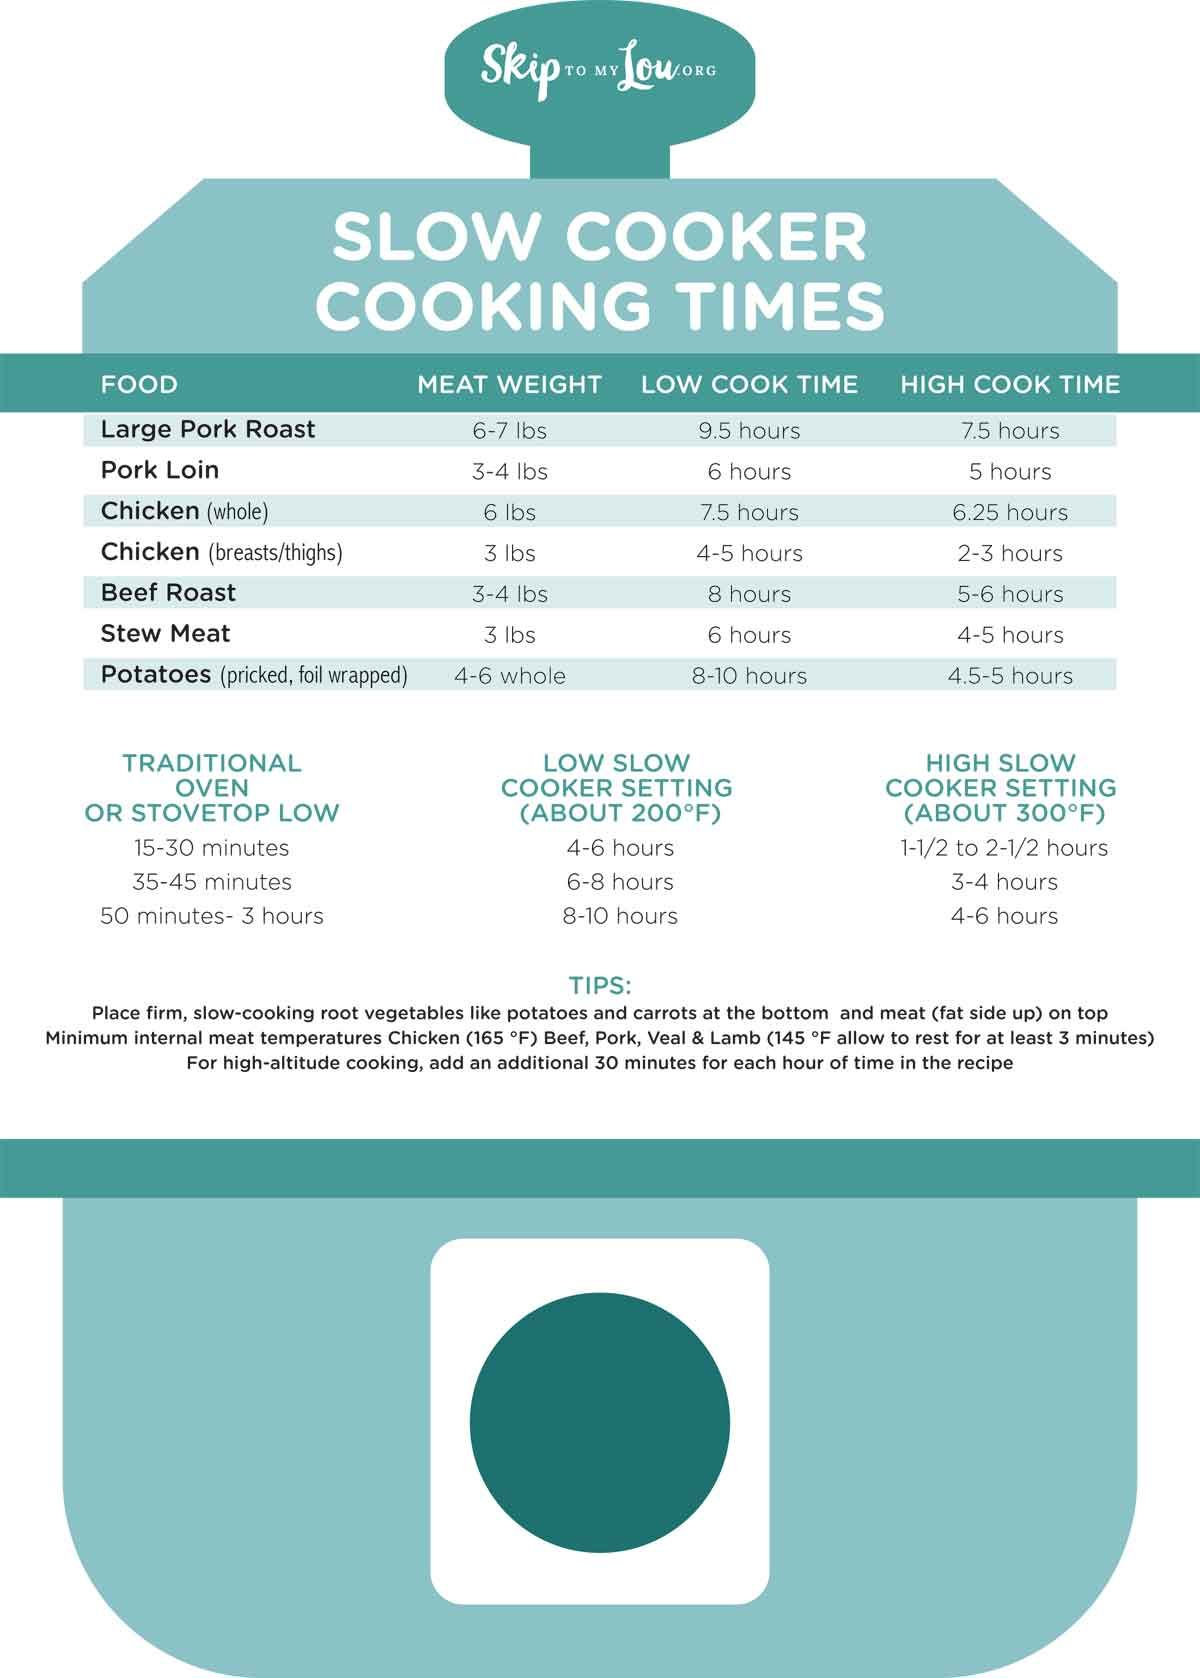 Slow Cooker Cheat Sheet Slow Cooker Times Slow Cooker Crock Pot Cooking